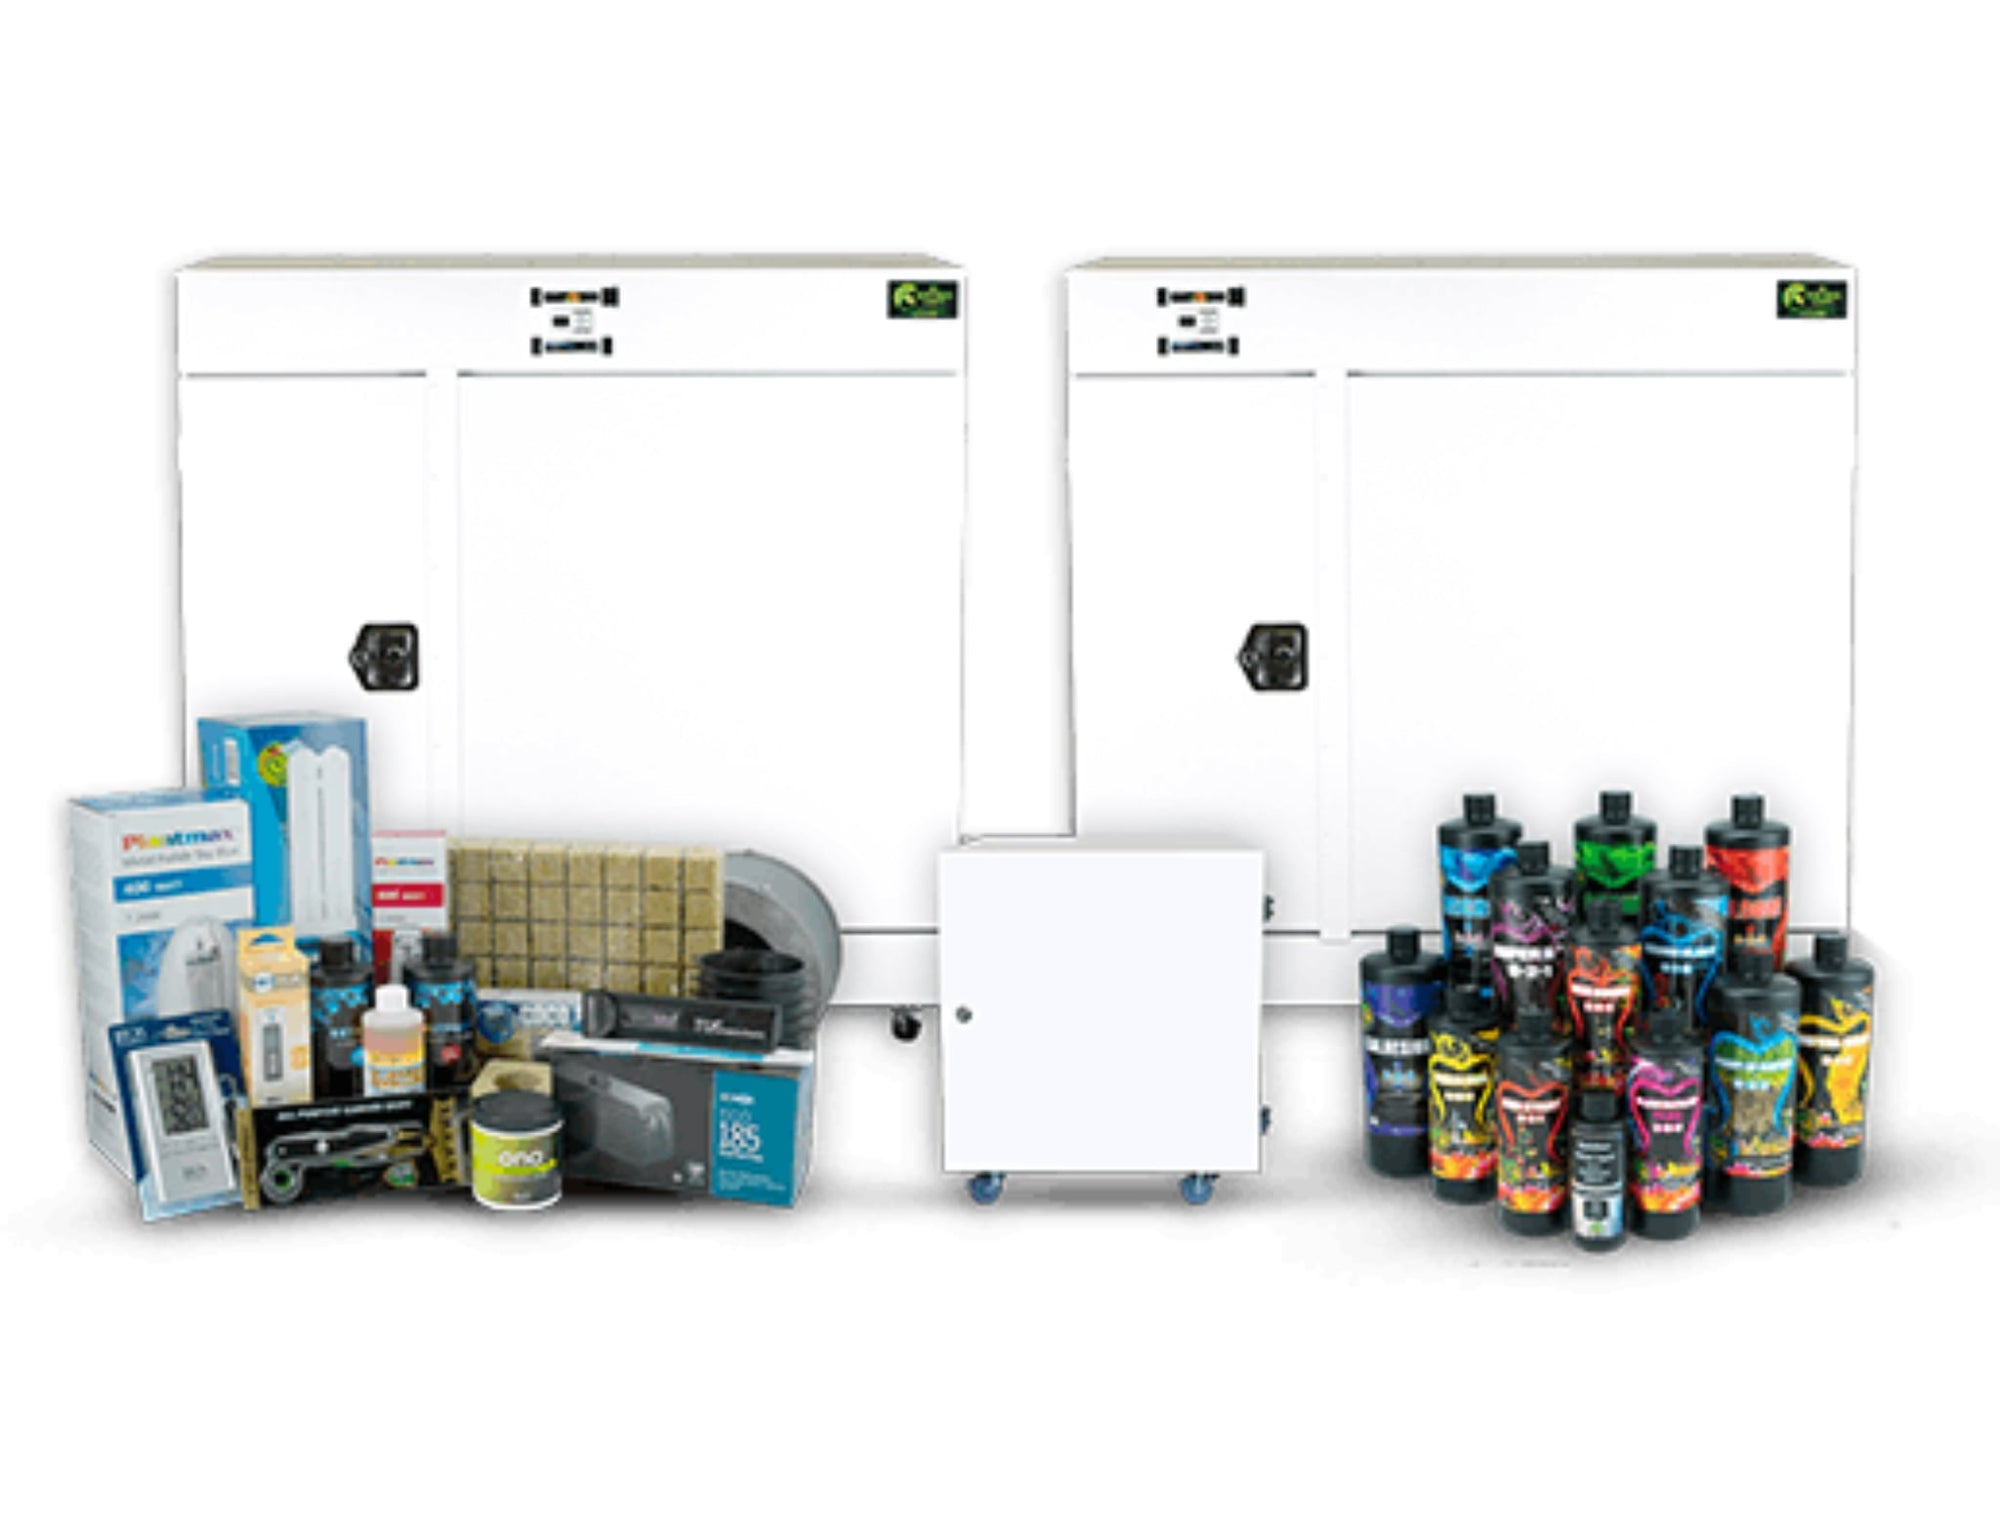 Photo including Bloombox, Producer, Dryer, Nutrients and accessories that come with the combo.